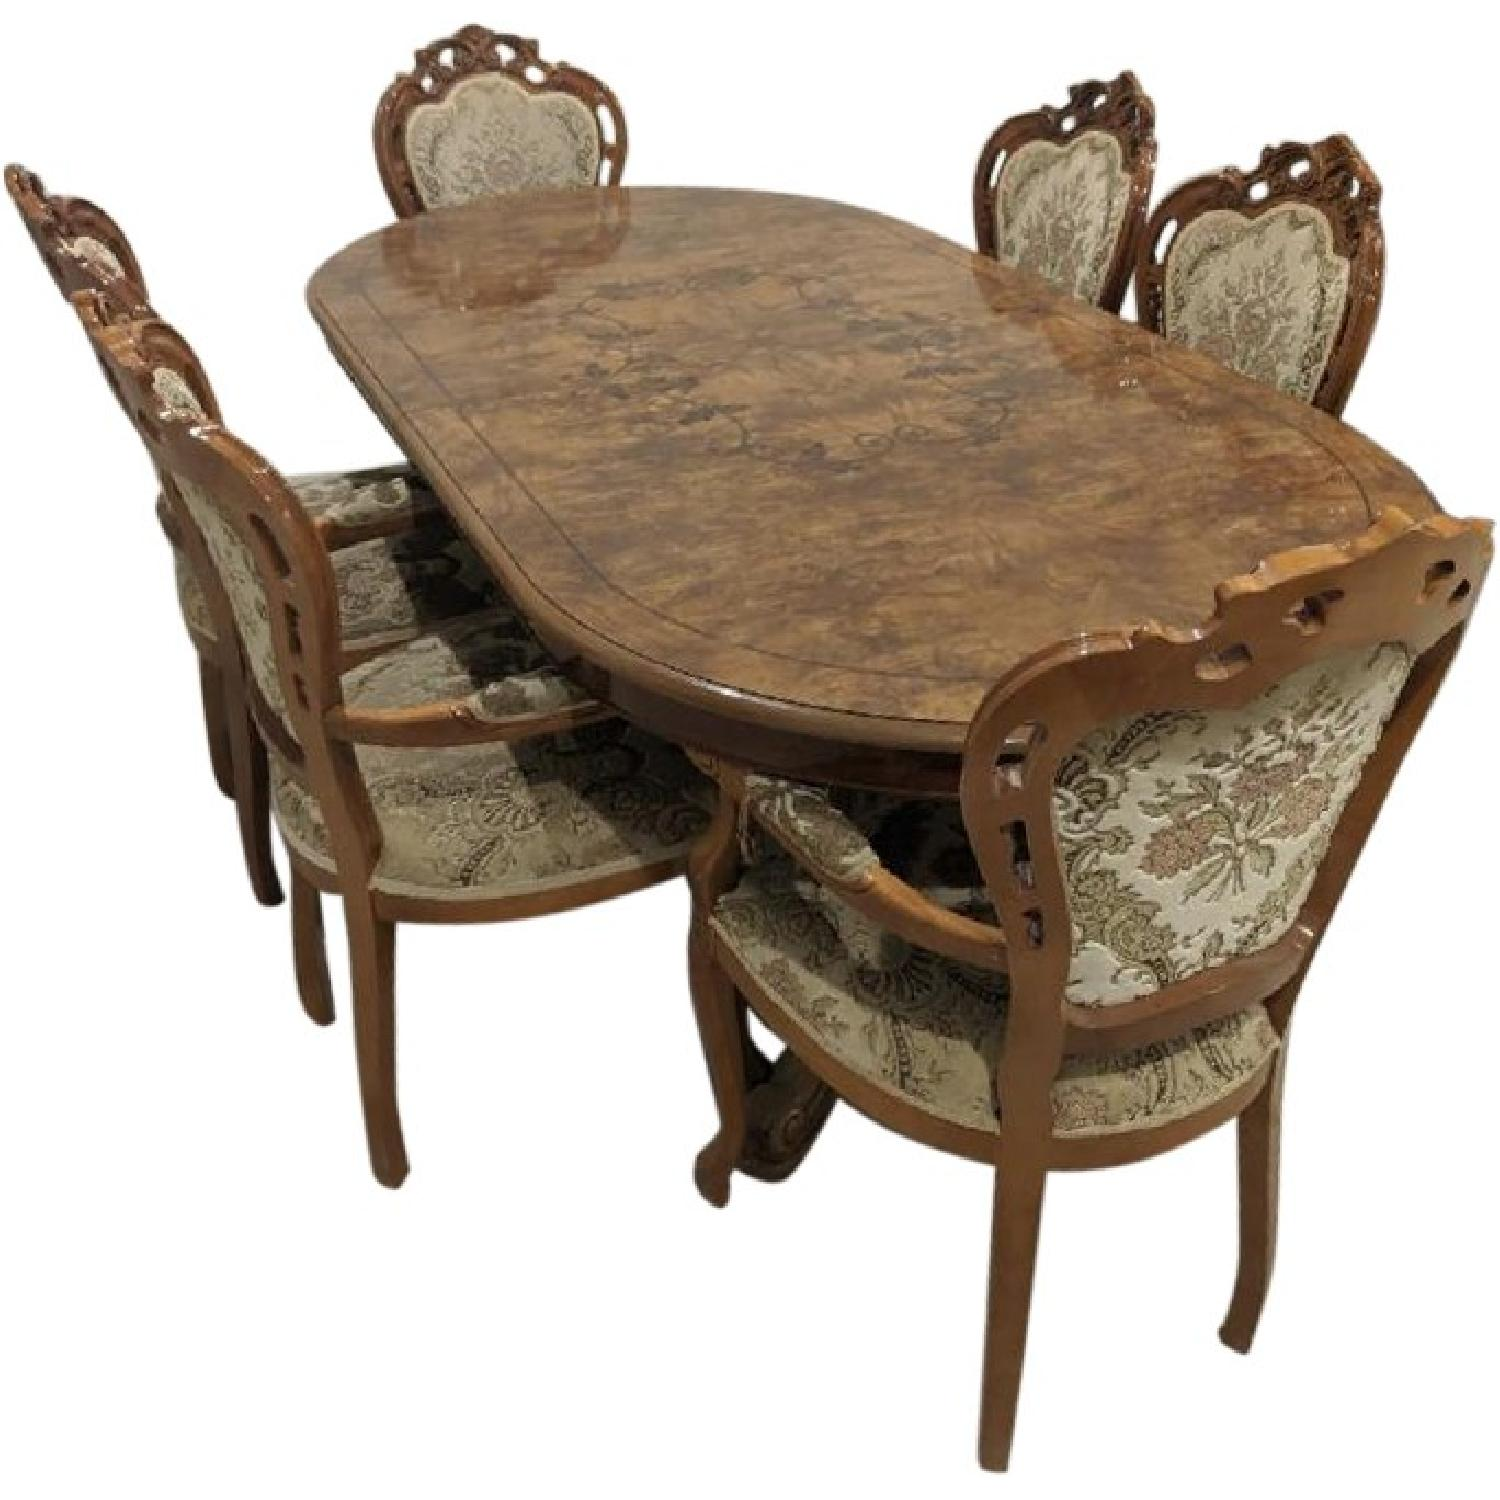 Rustic Dining Table w/ 6 Chairs